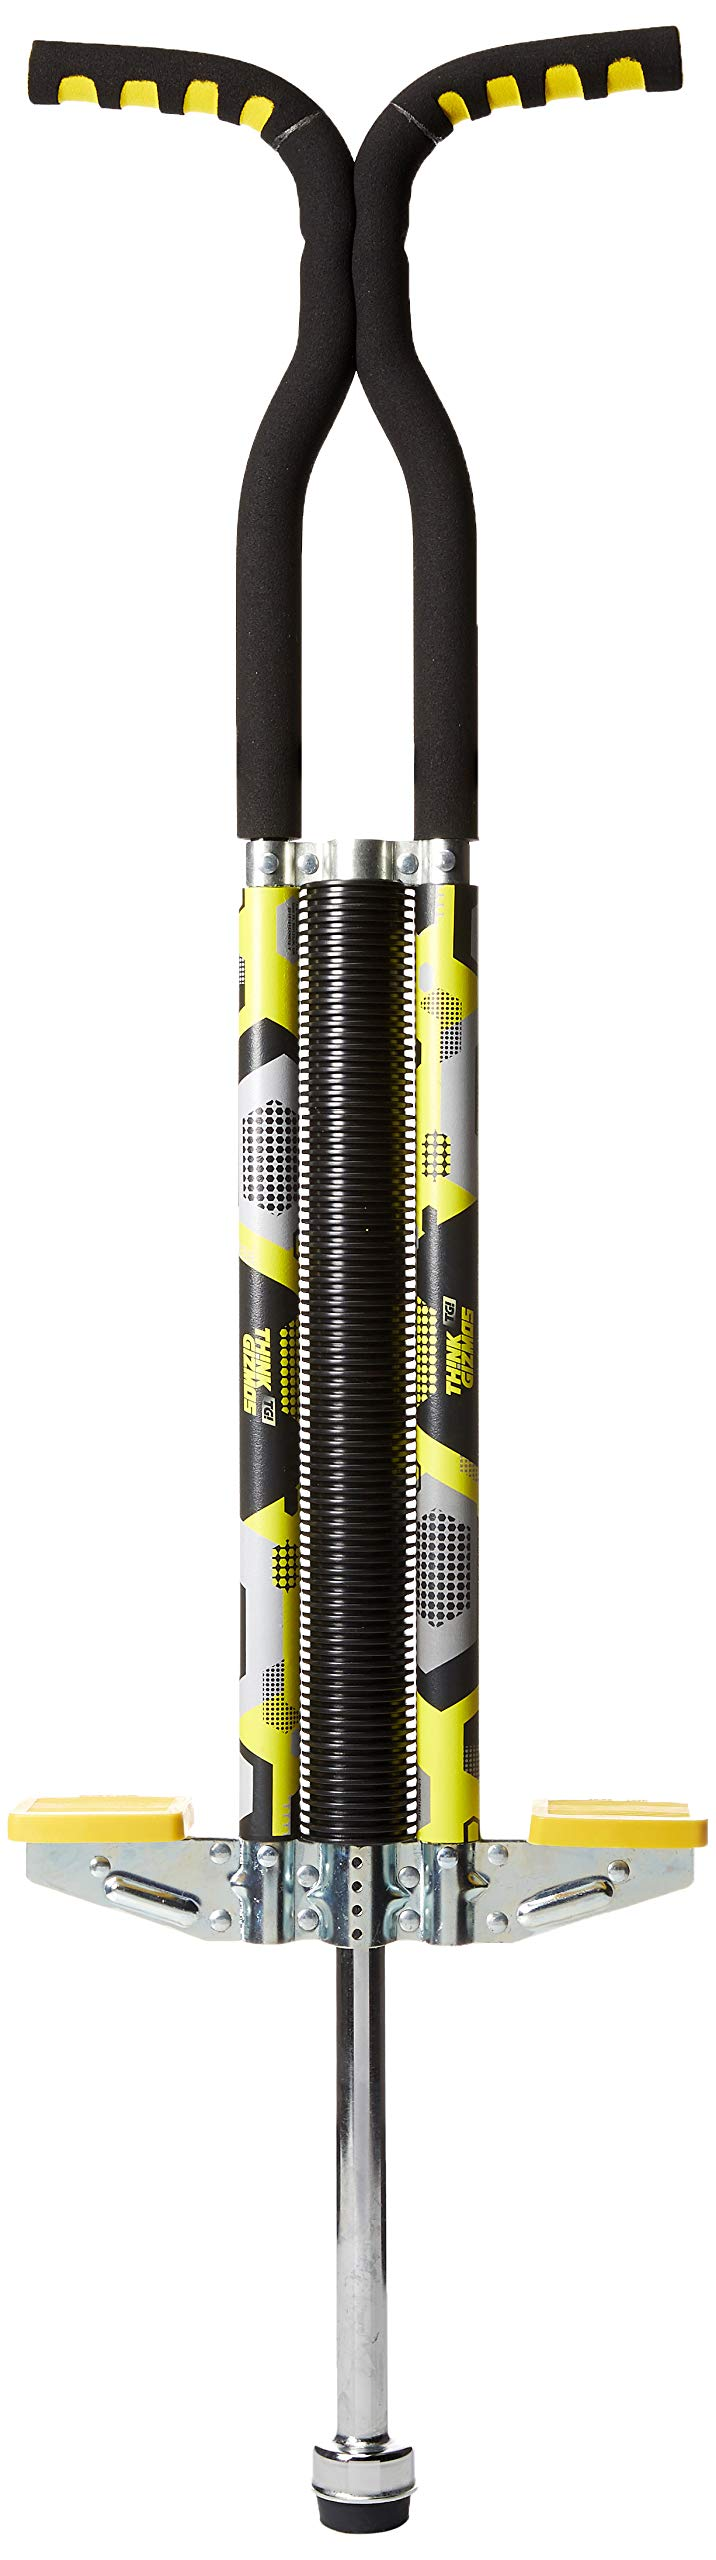 Think Gizmos Pogo Stick for Riders 80lbs to 160lbs - Pogo Stick for Boys & Girls (& Light Adults) - Quality Solid Construction (Yellow) by Think Gizmos